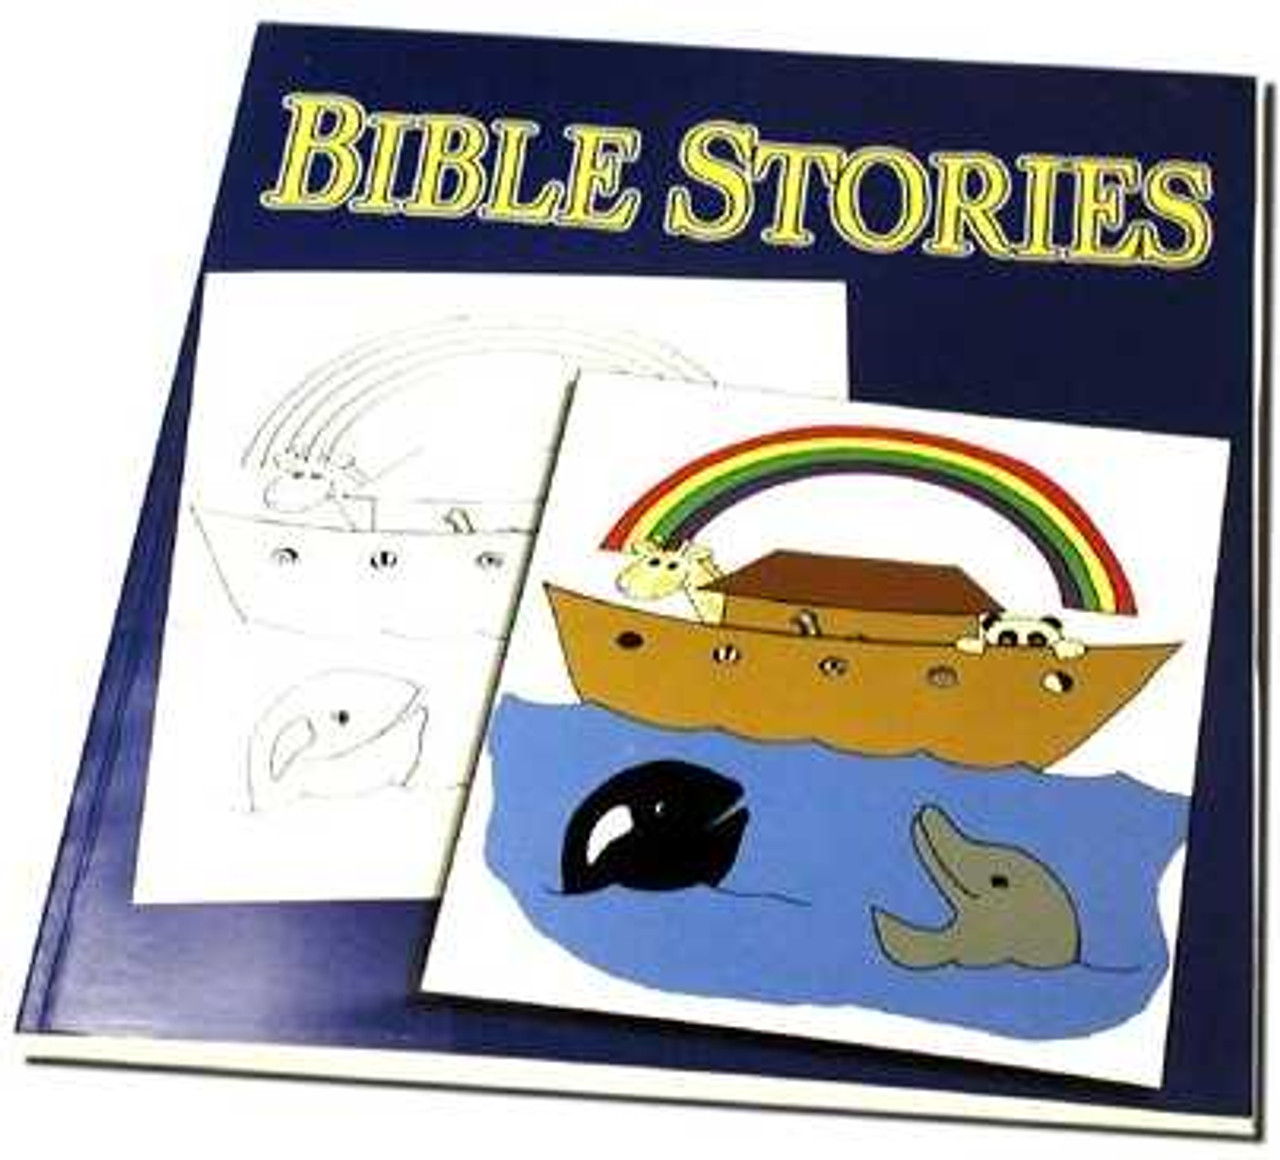 Royal Bible Stories Magic Colouring Book Make The Pages Of This Book Colour Themselves Then Vanish The Drawing Completely Kids Show Favourite Mission Magic